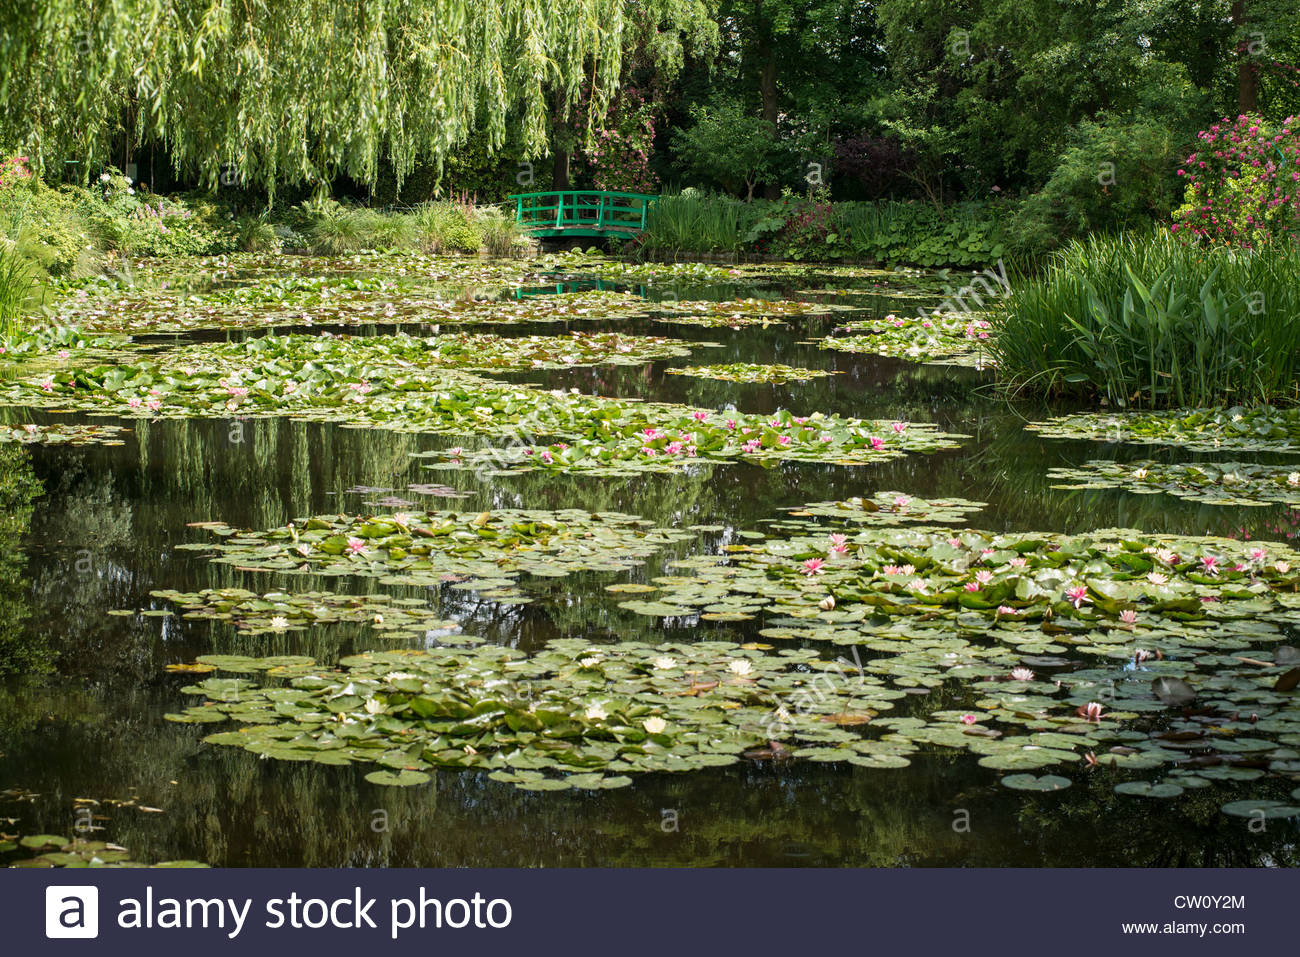 monets-water-garden-at-giverny-CW0Y2M.jpg